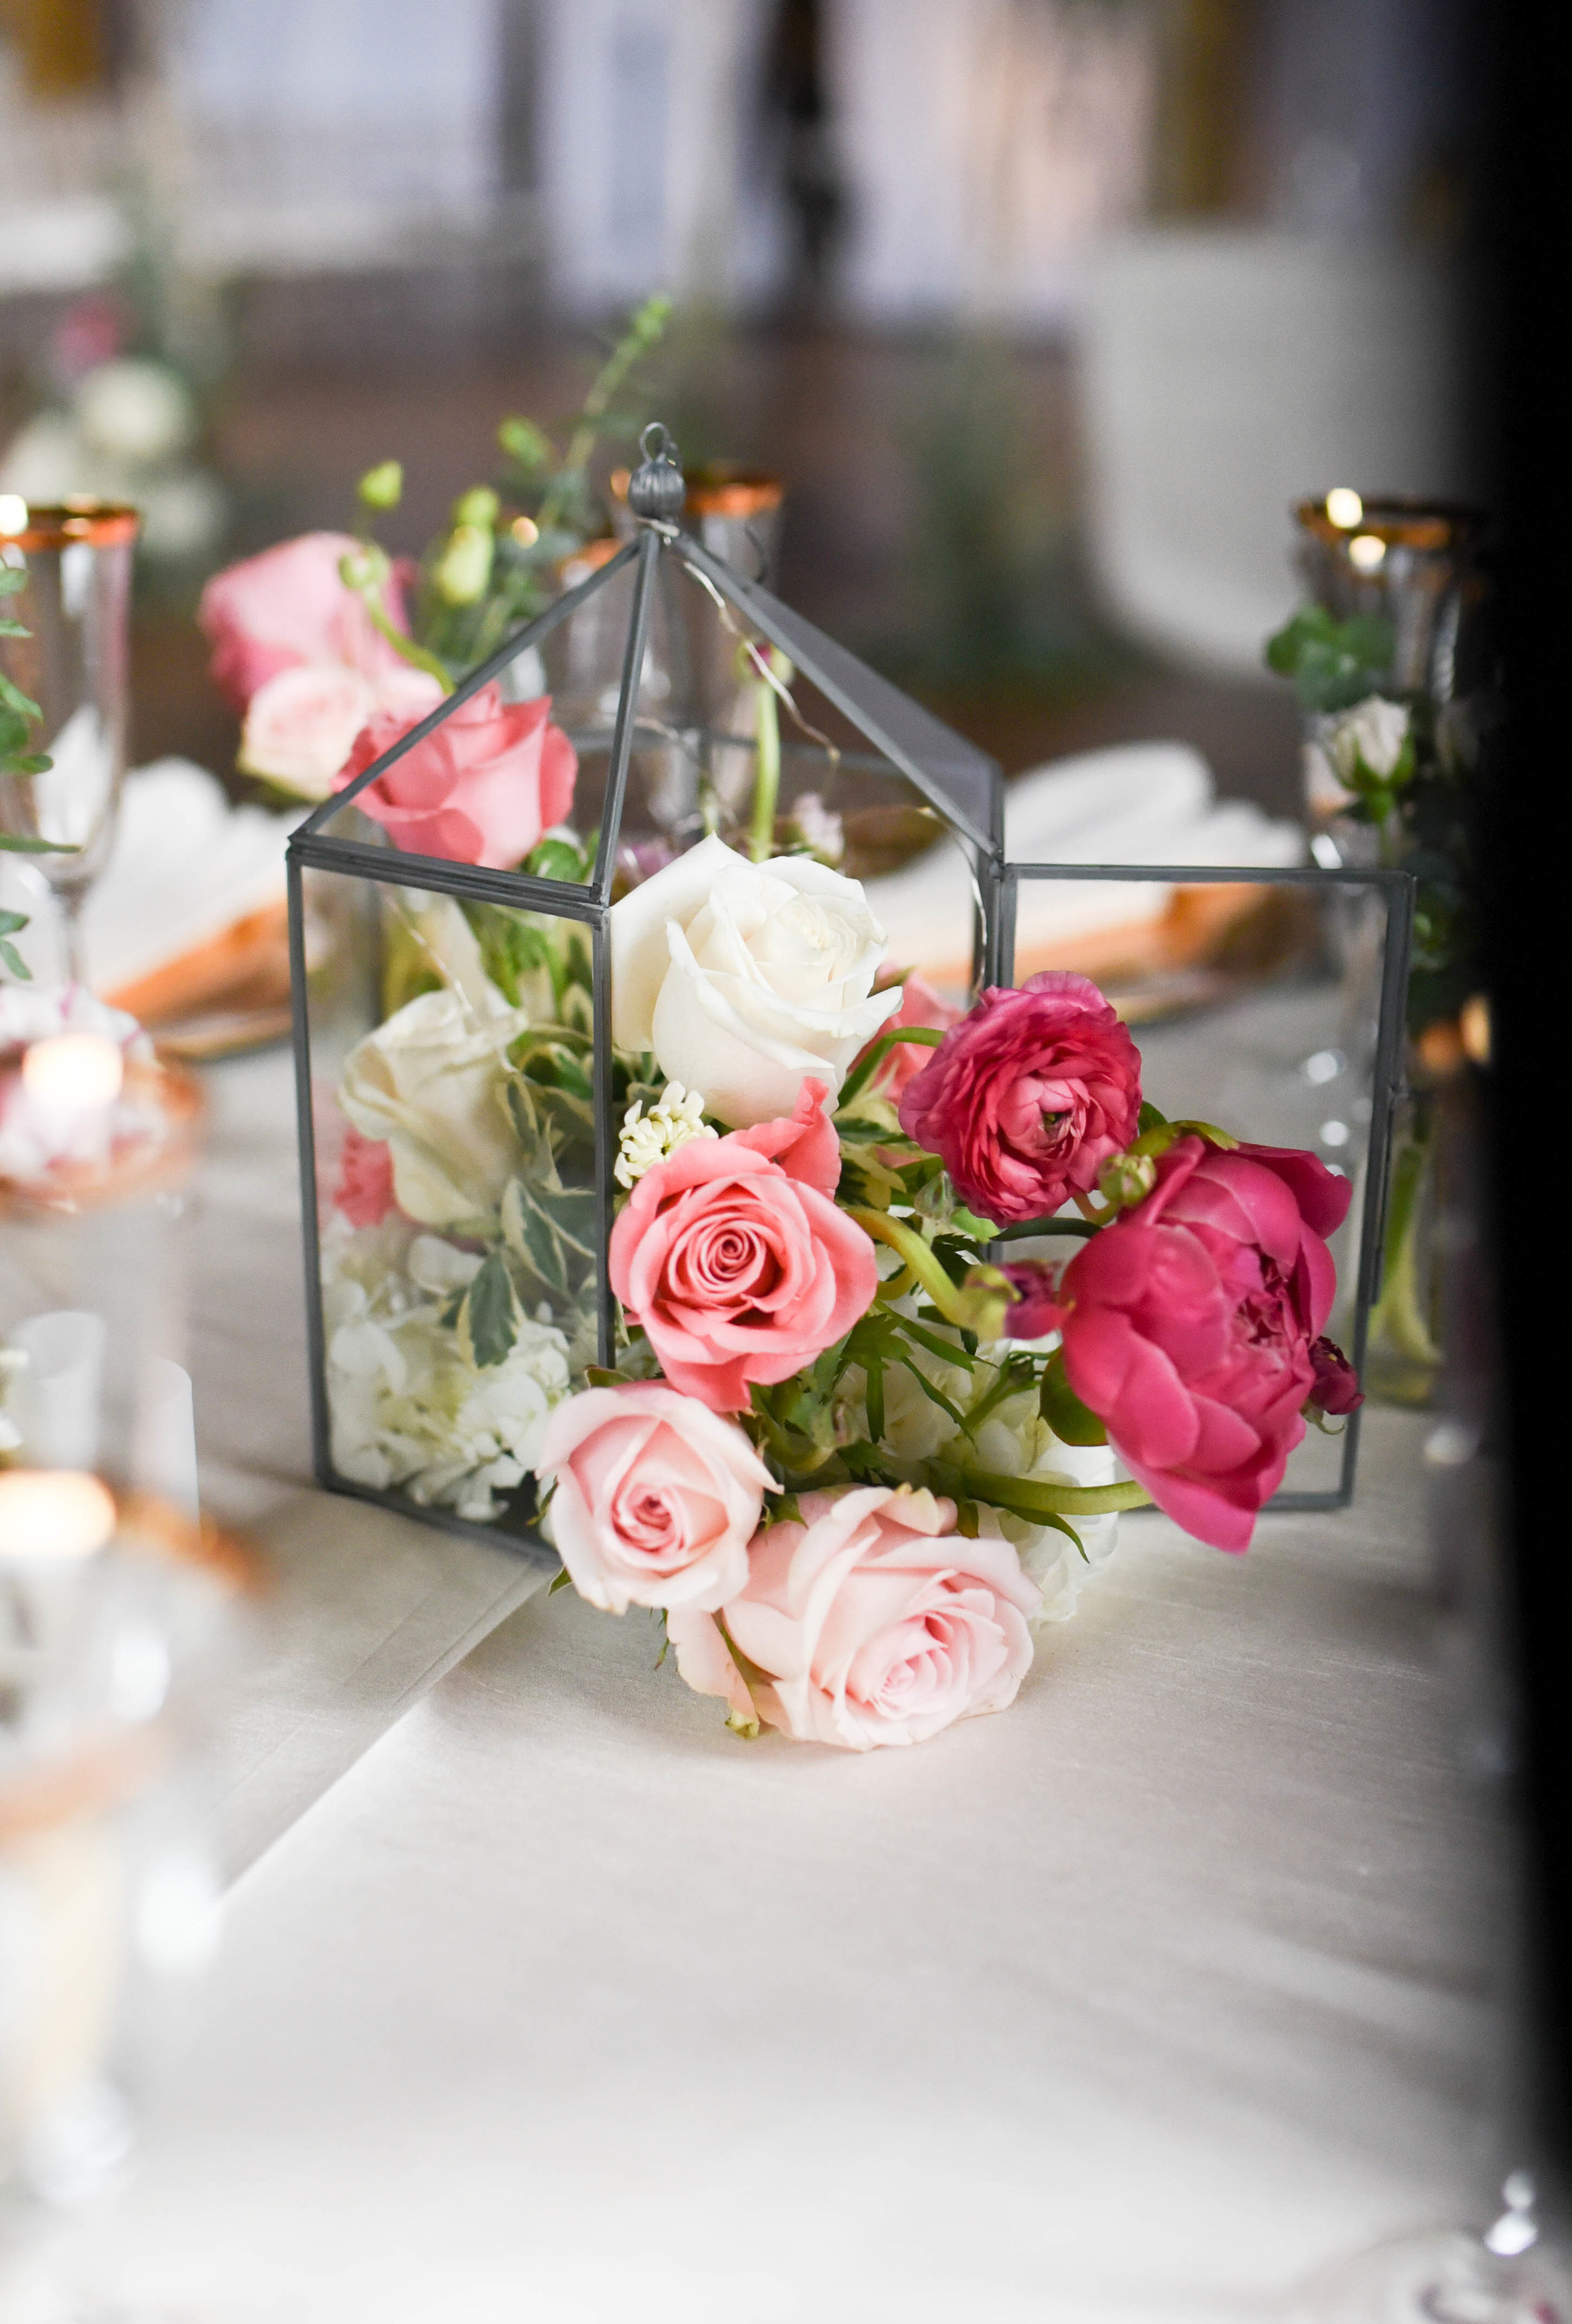 Roses, ranunculus and peonies pour from this lantern